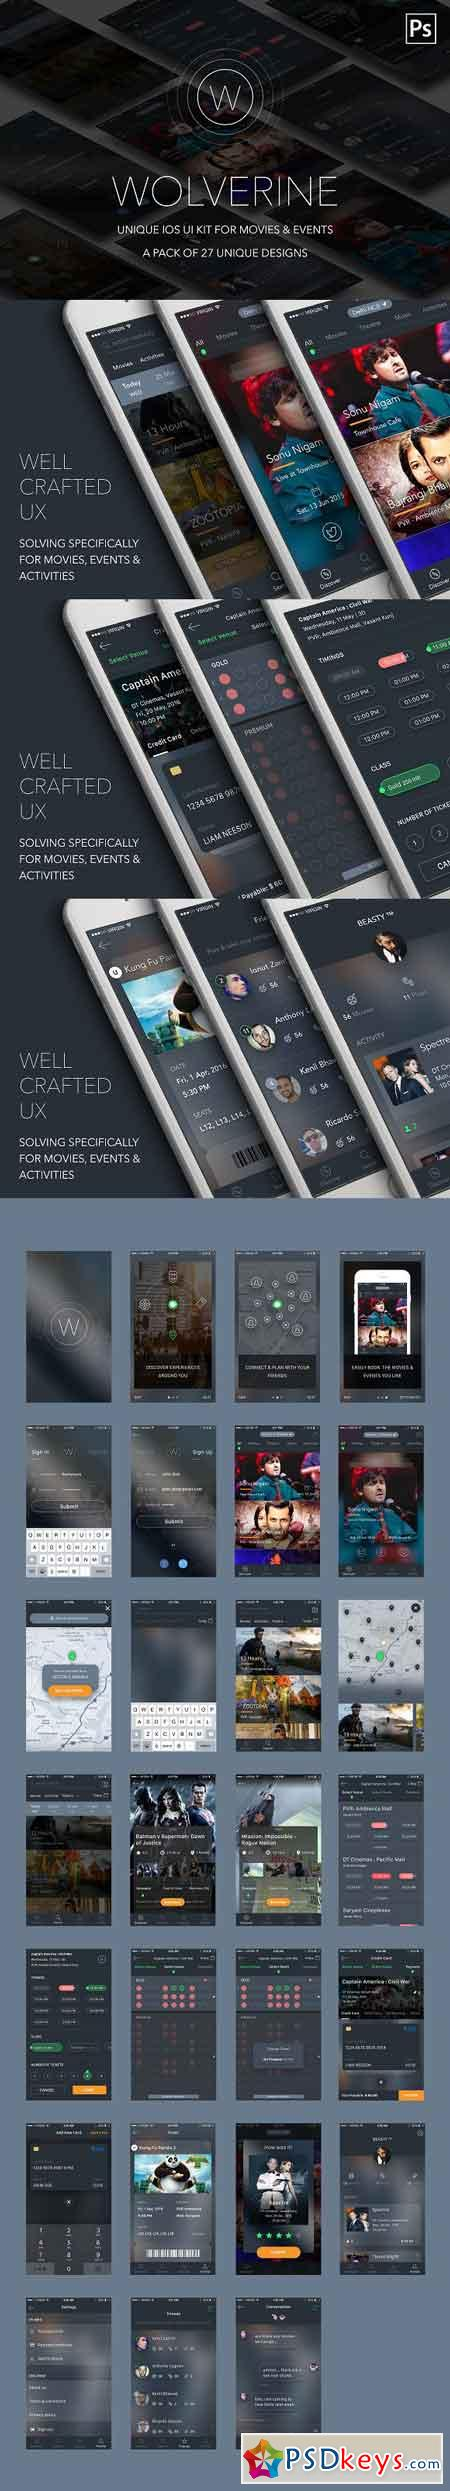 Wolverine IOS UI KIT for activities 684969